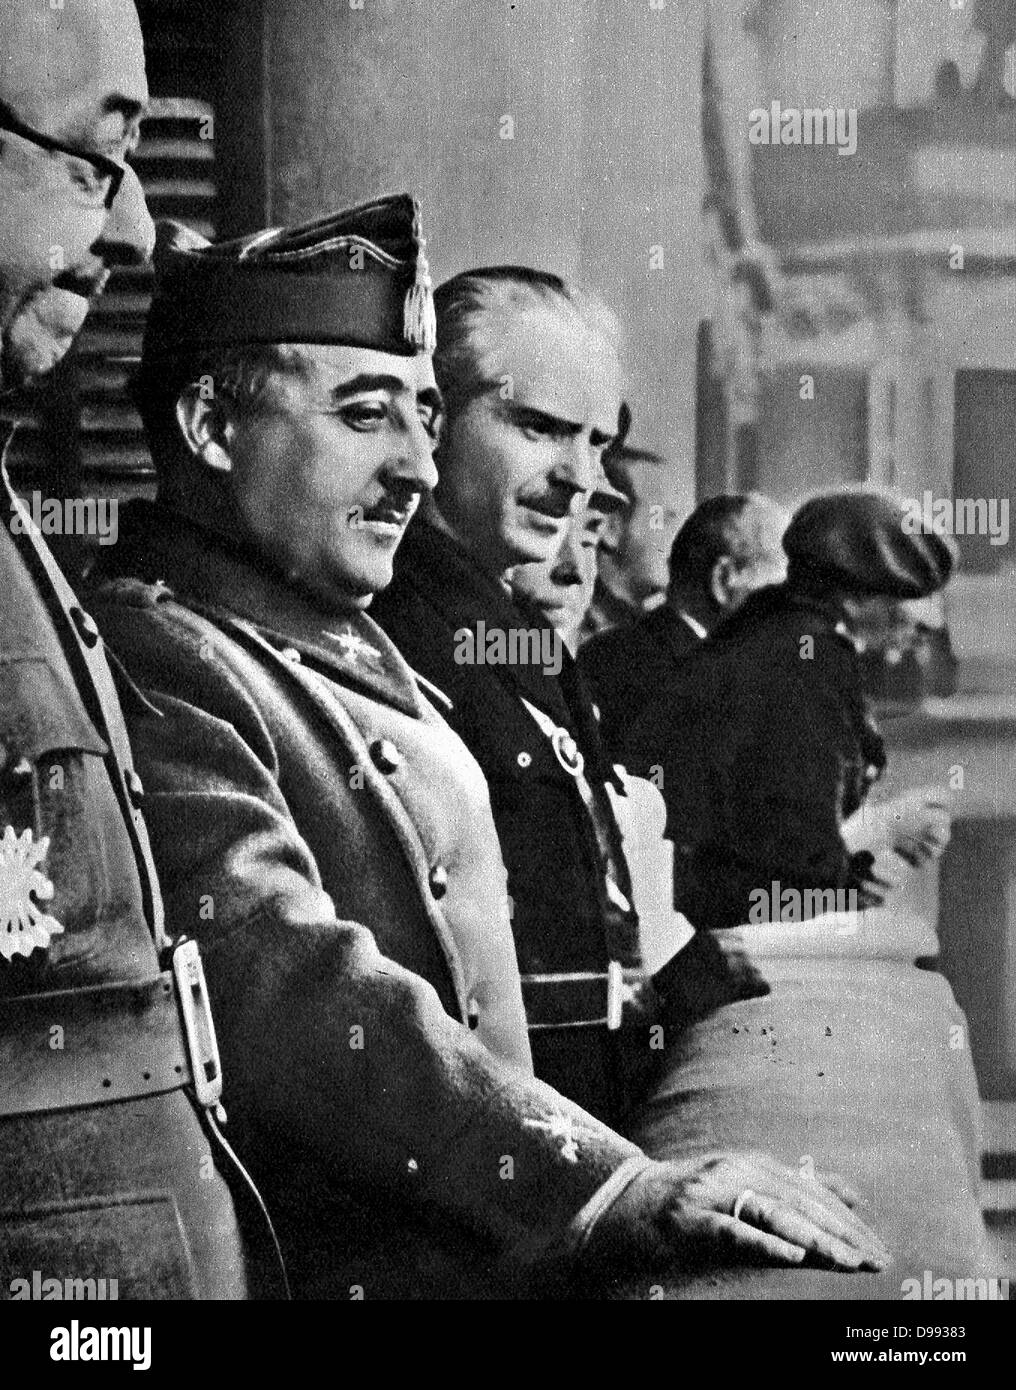 Francisco Franco (4 December 1892 – 20 November 1975), Spanish General and dictator, head of state of Spain from - Stock Image